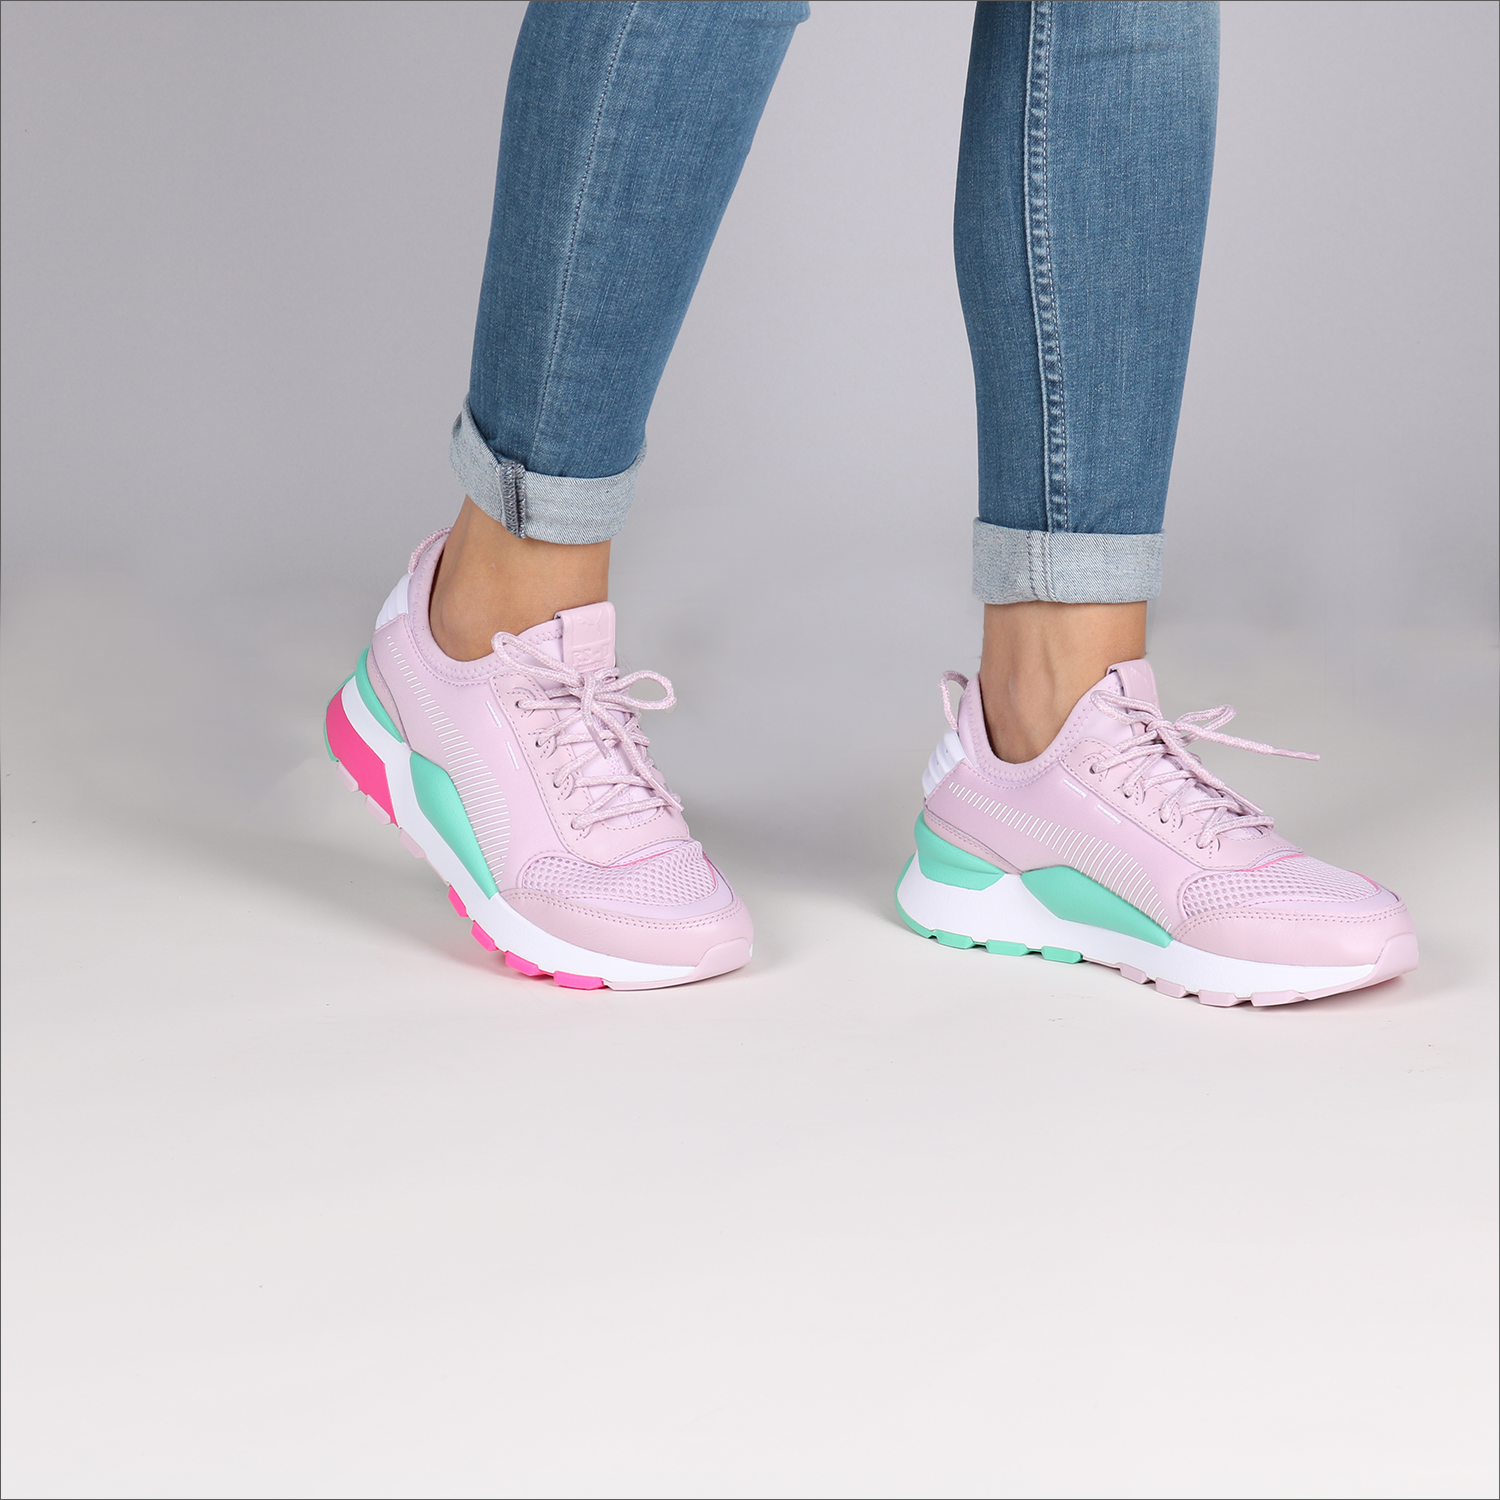 341550942a9 Roze PUMA Sneakers RS-0 PLAY DAMES - Omoda.nl